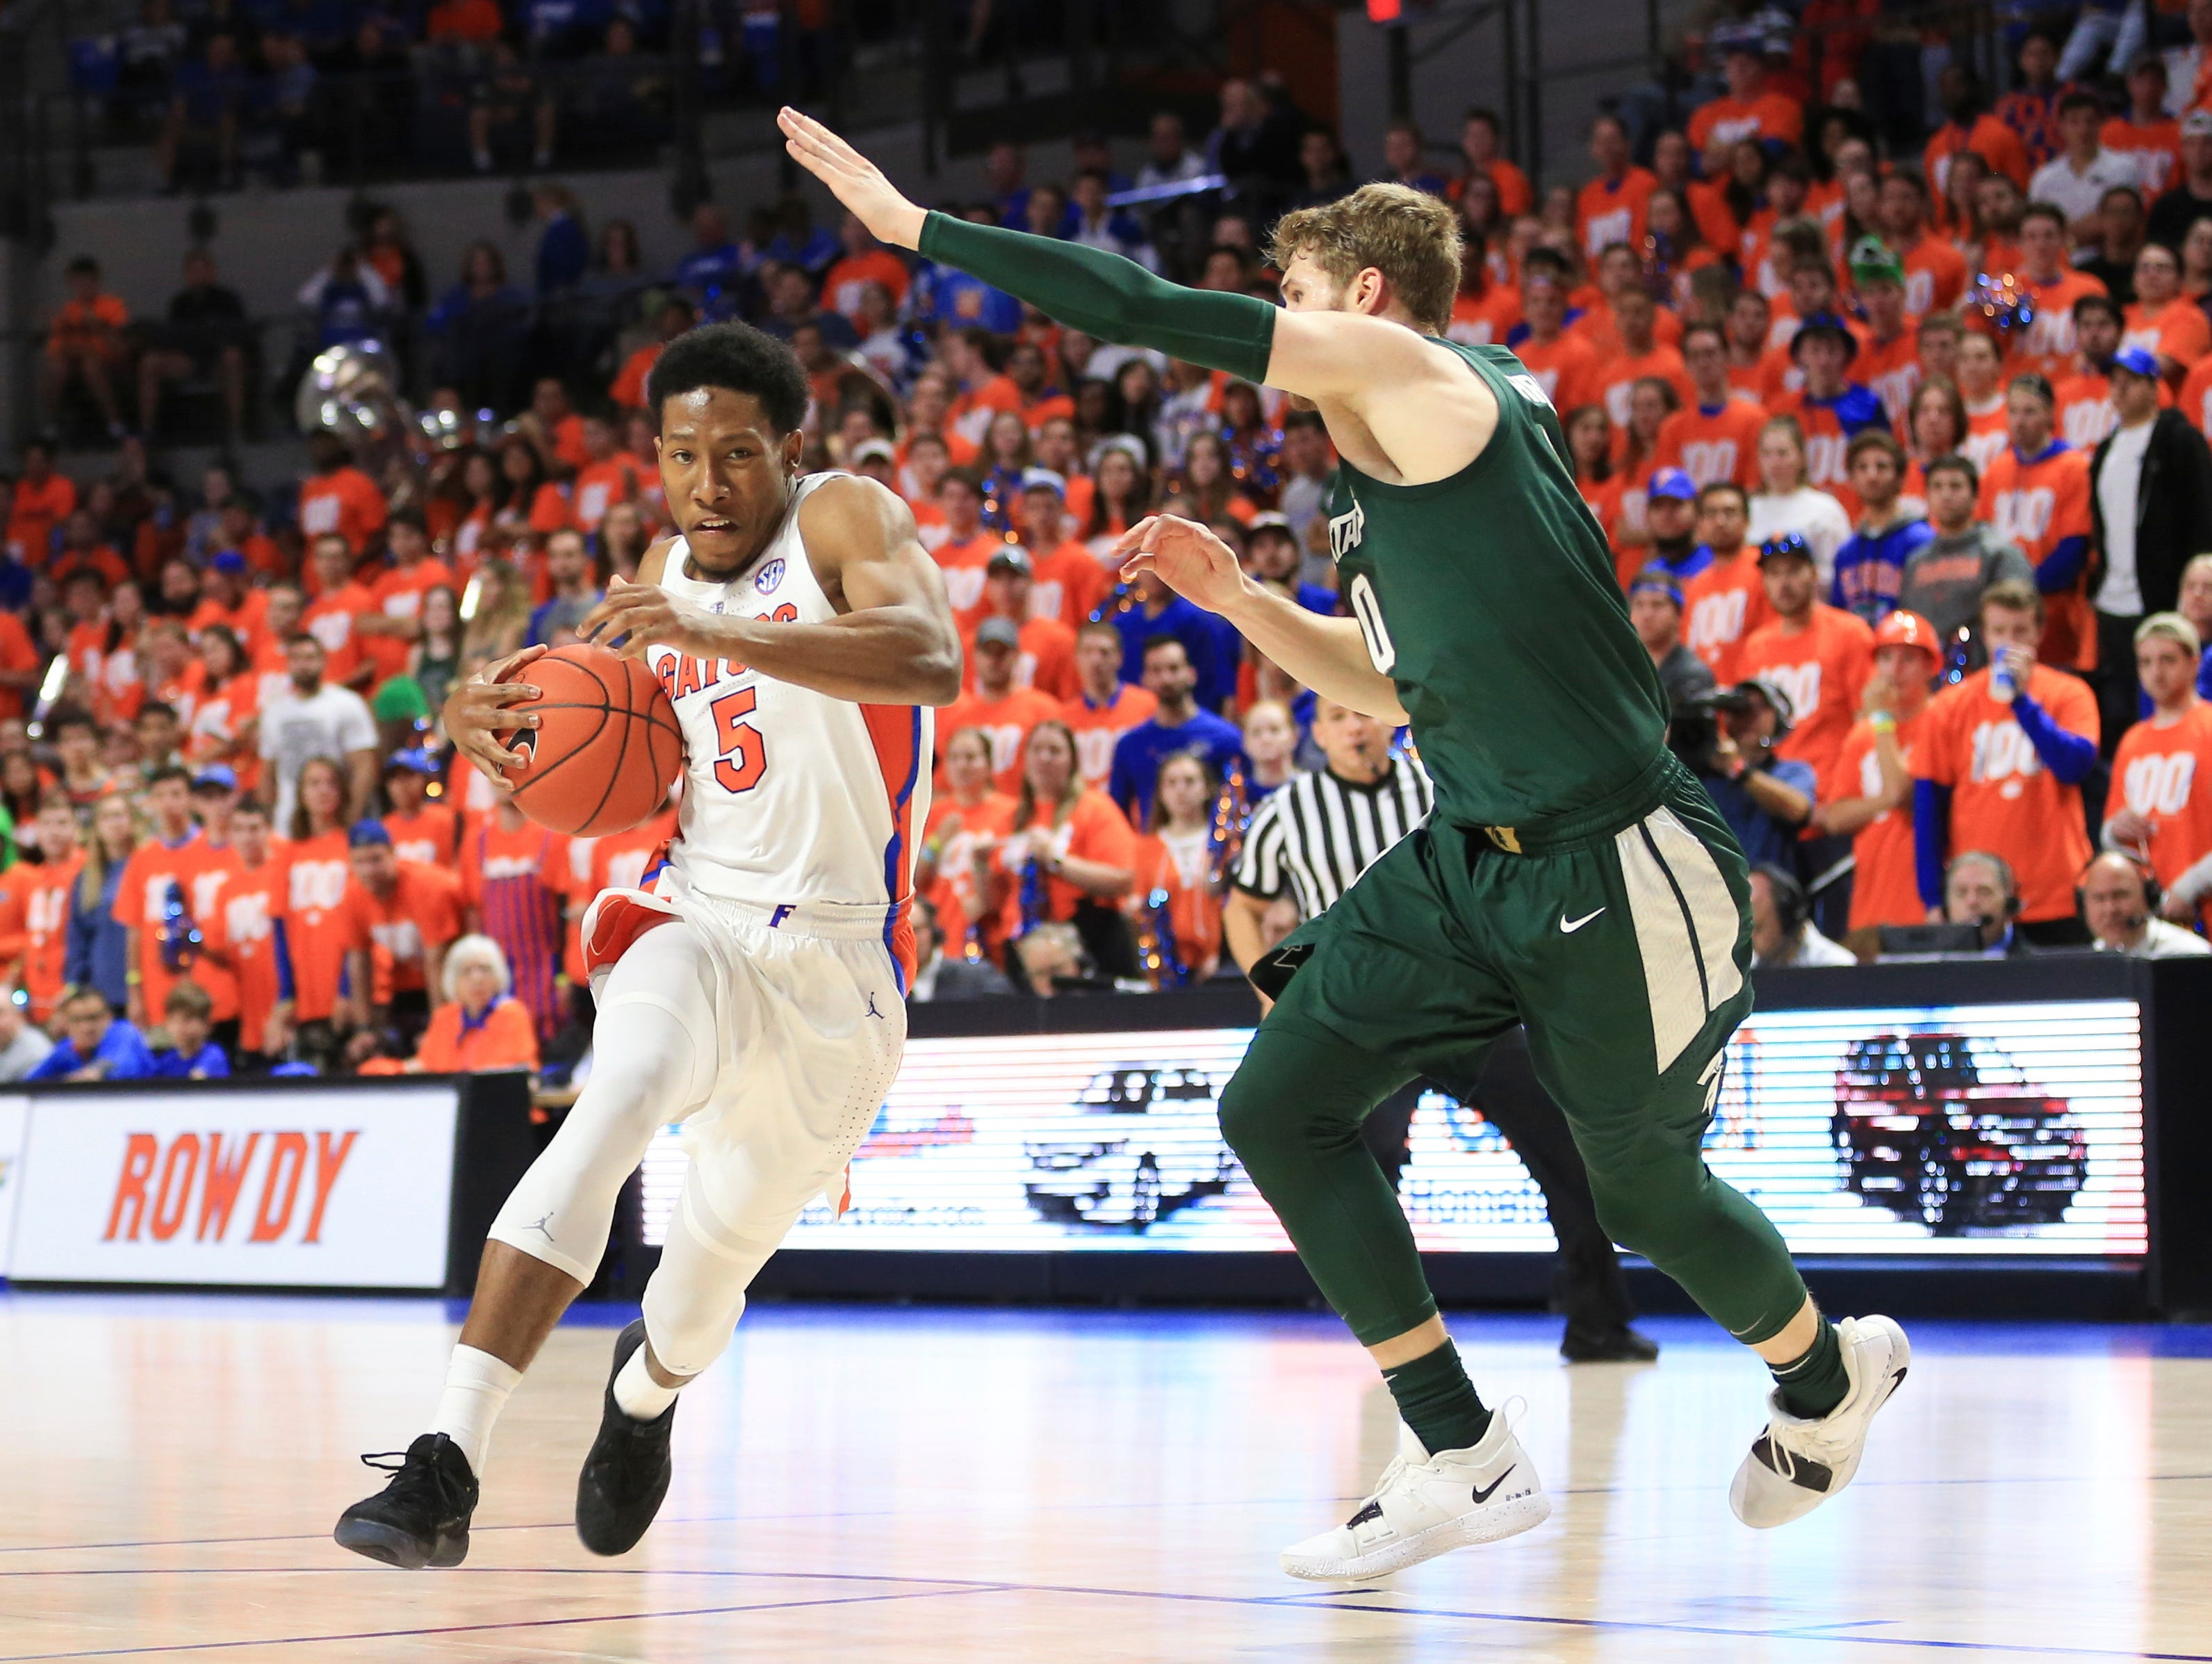 Florida guard KeVaughn Allen (5) drives to the basket past Michigan State forward Kyle Ahrens (0) during the second half.